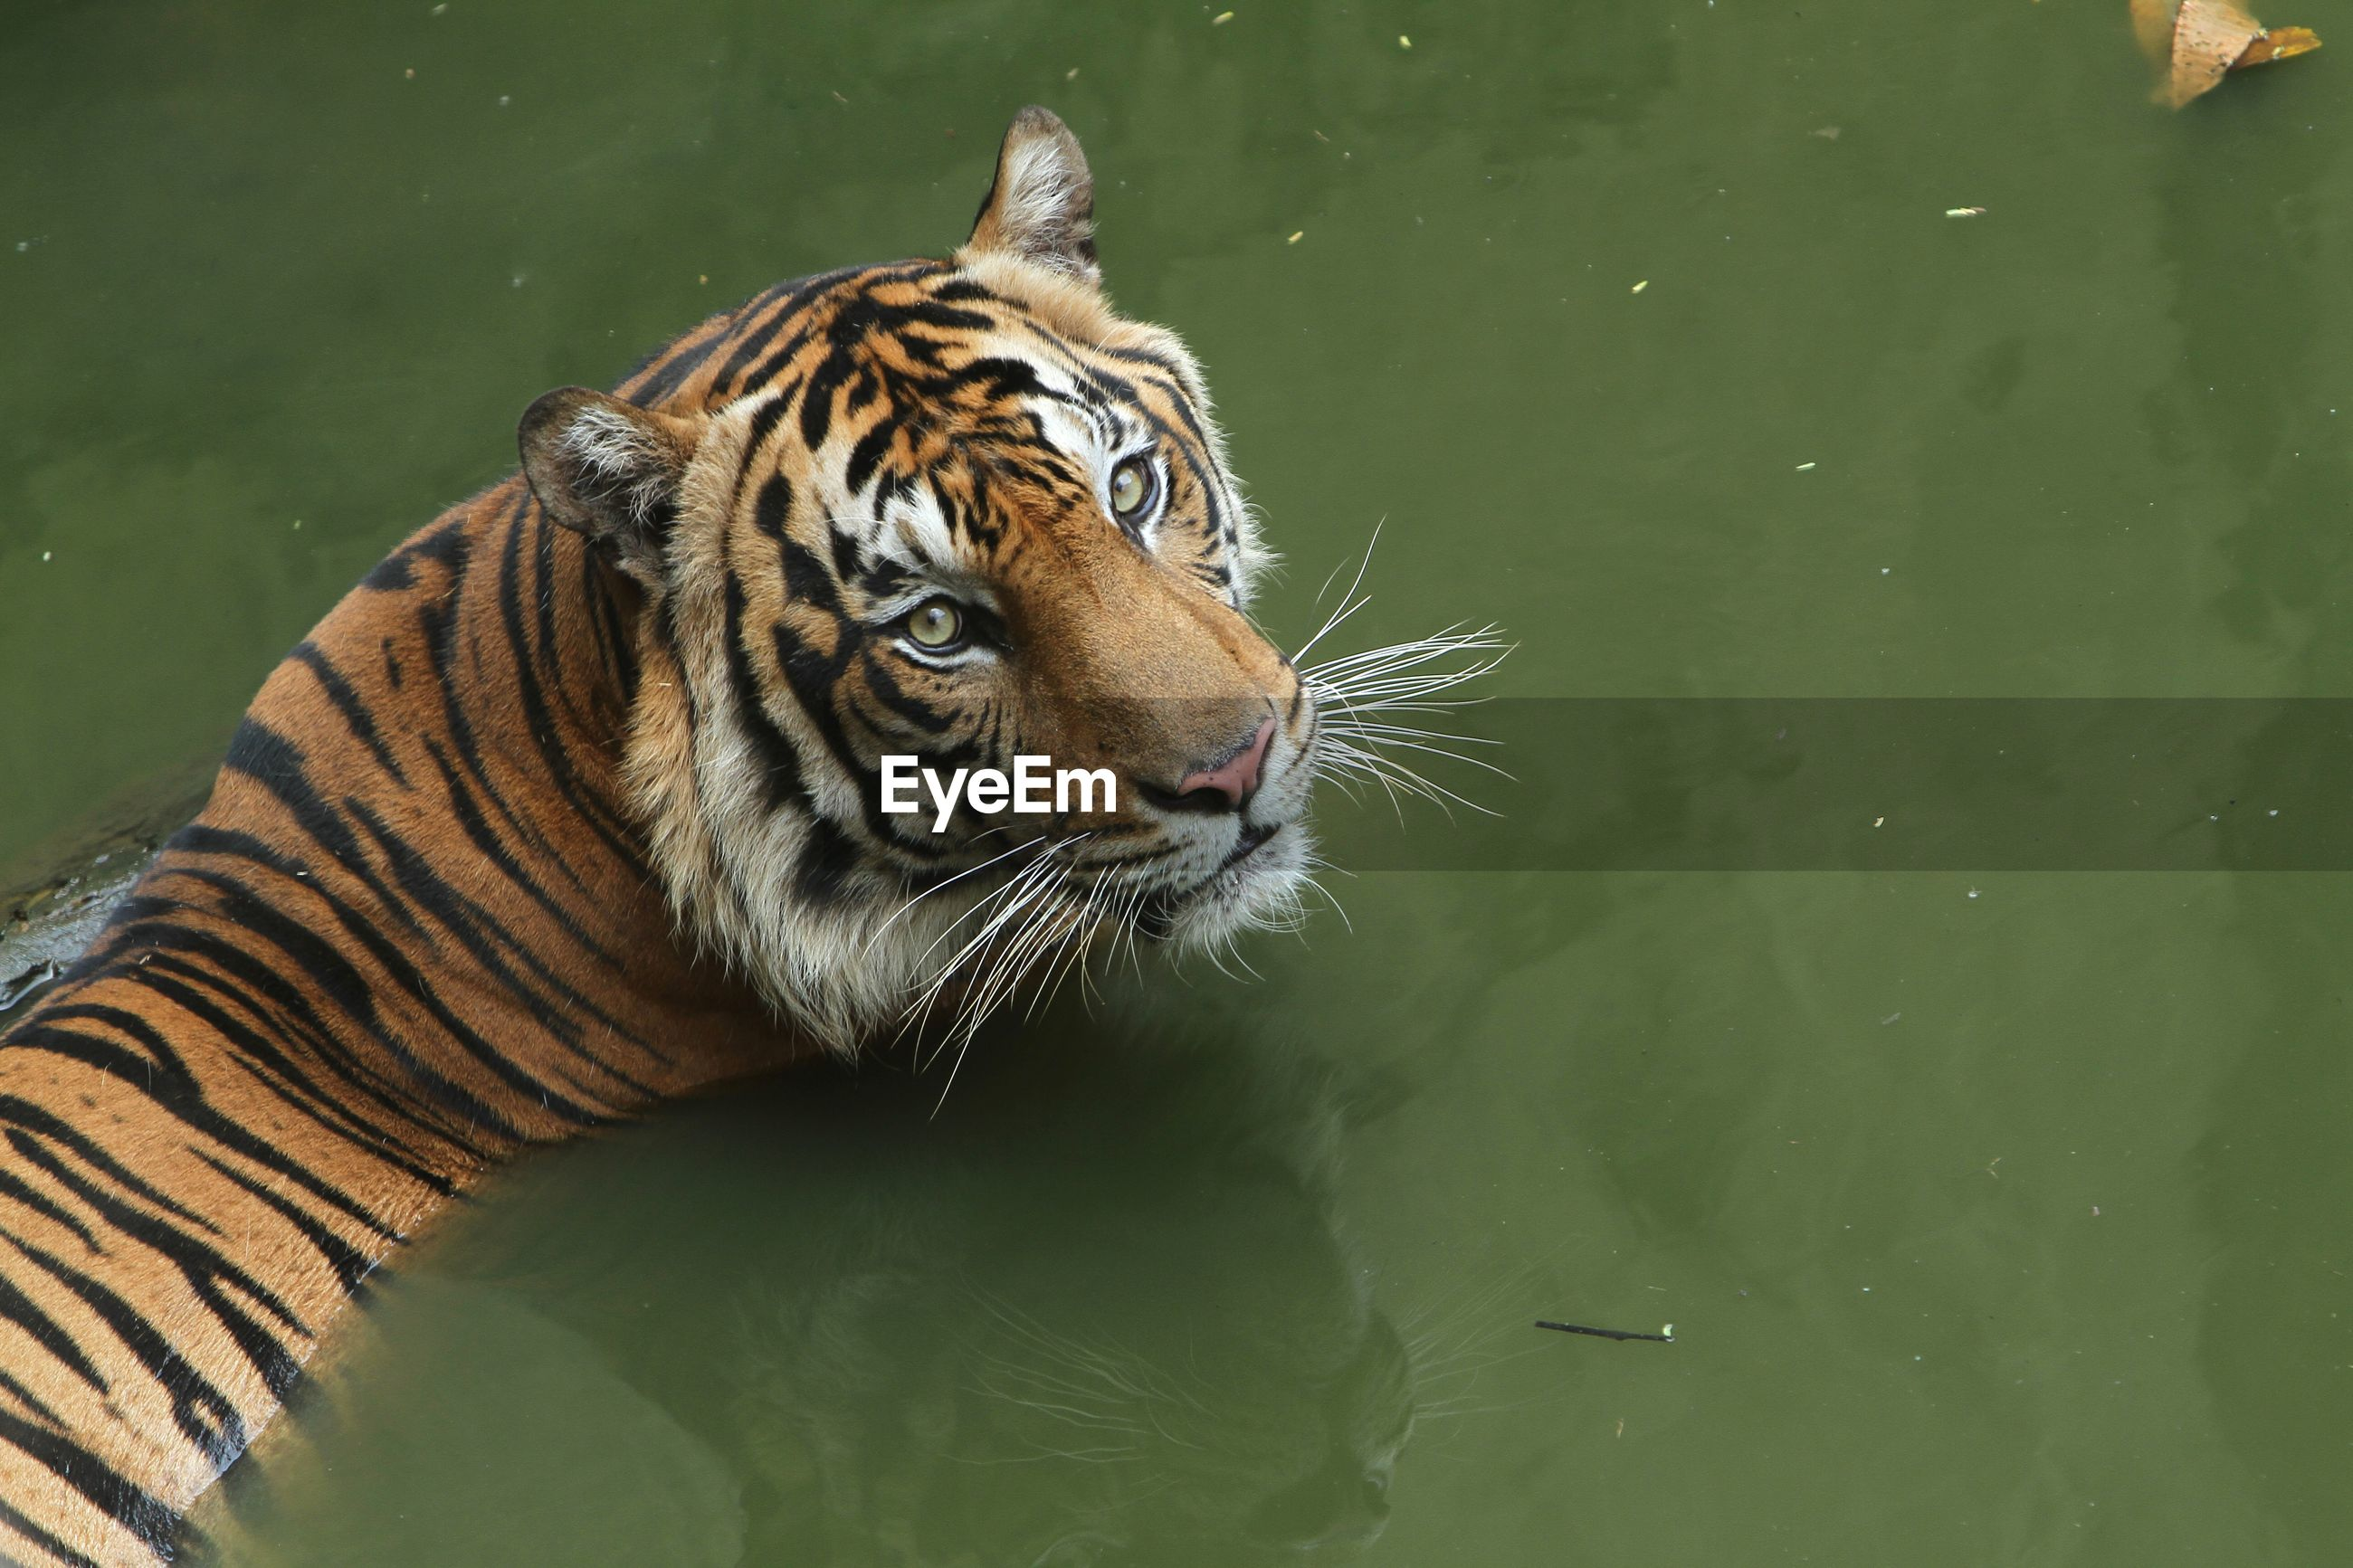 Tiger in a lake